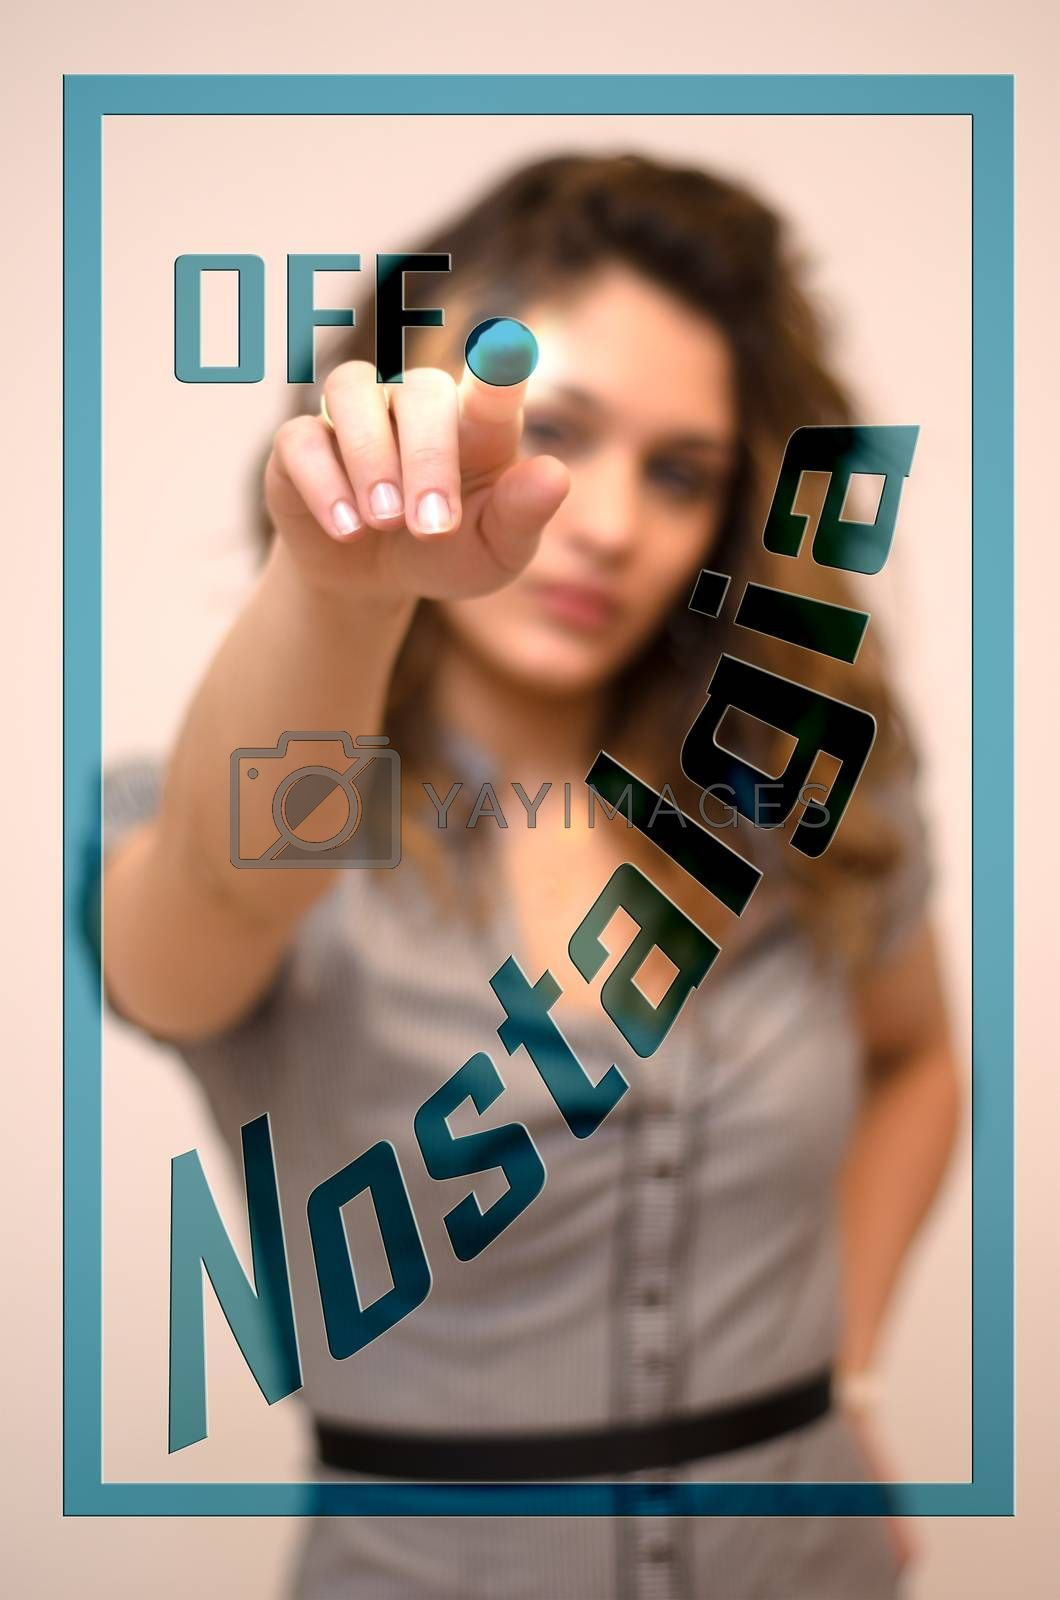 young woman turning offNostalgia on hologram screen